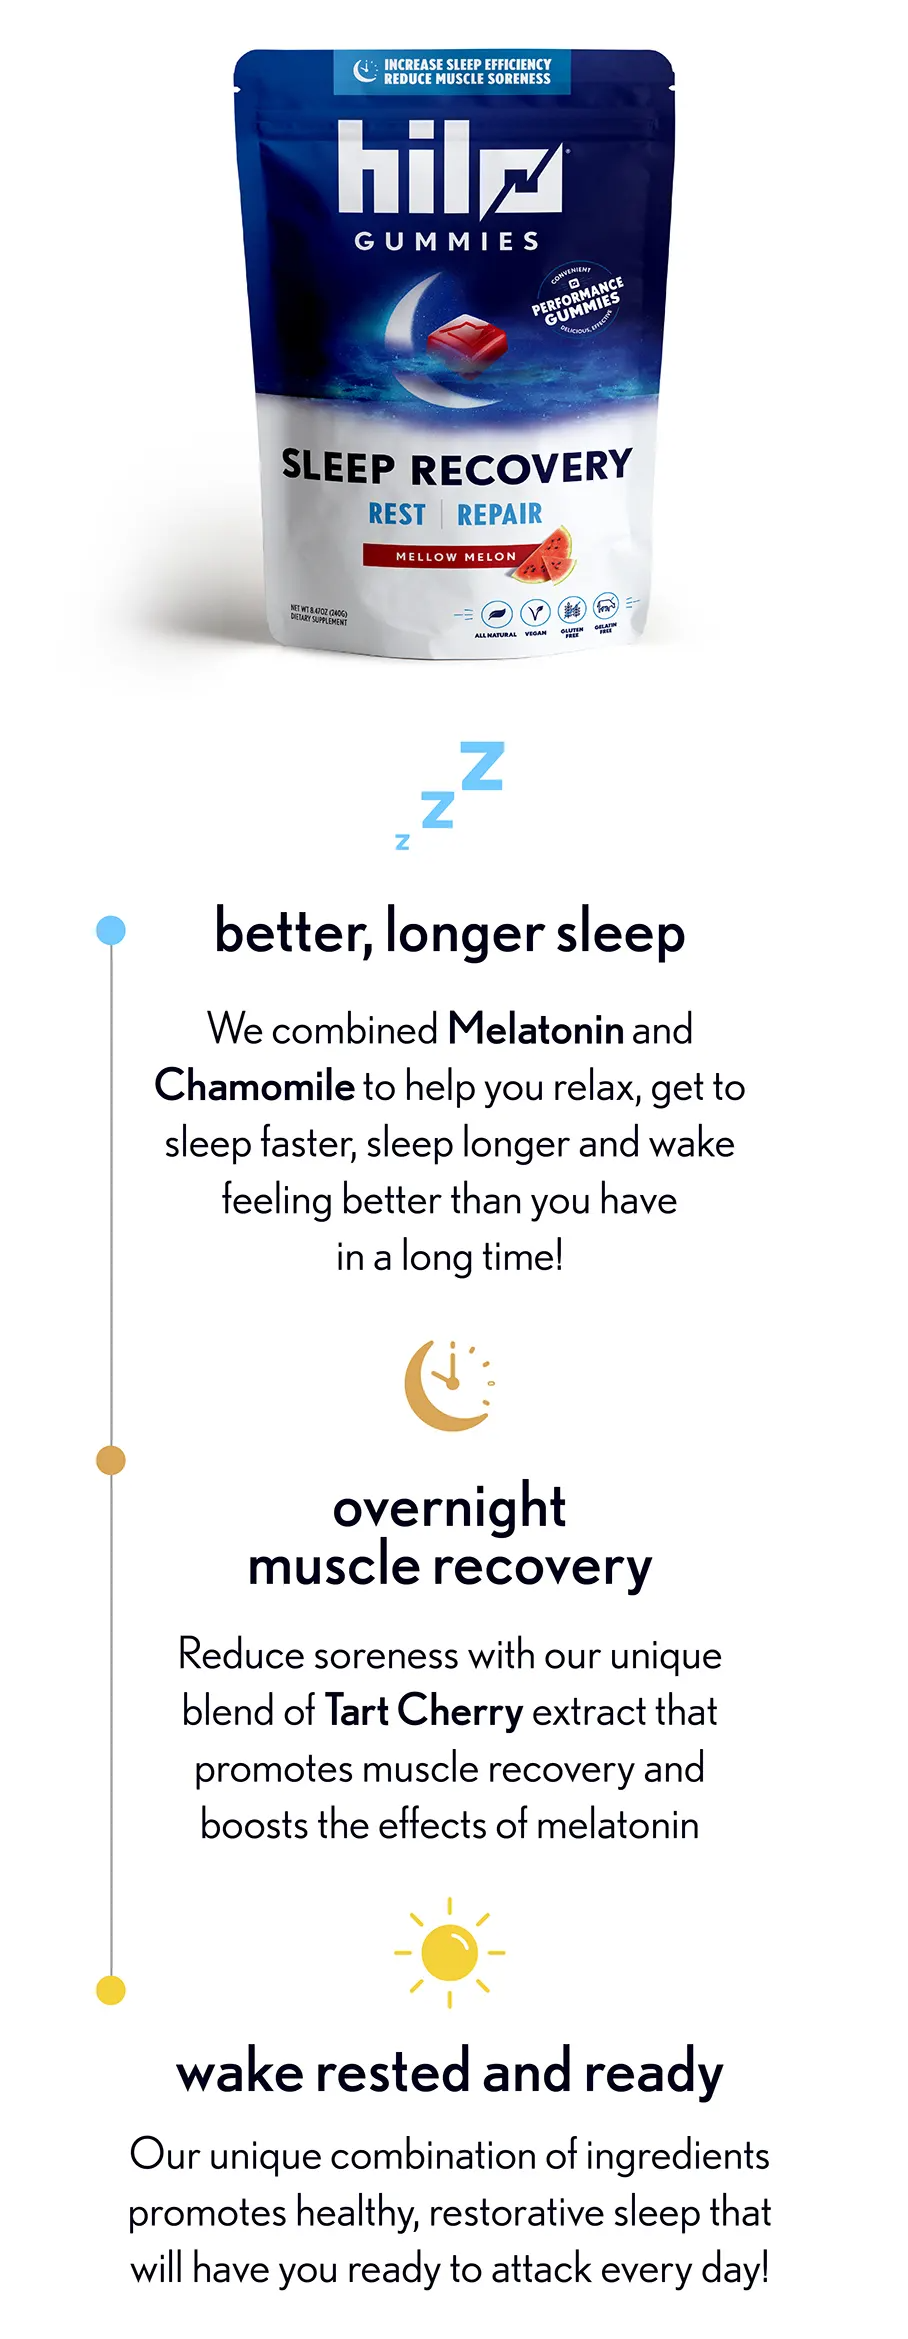 Sleep Recovery Gummies - Muscle Recovery, Better and Longer Sleep, Wake rested and ready